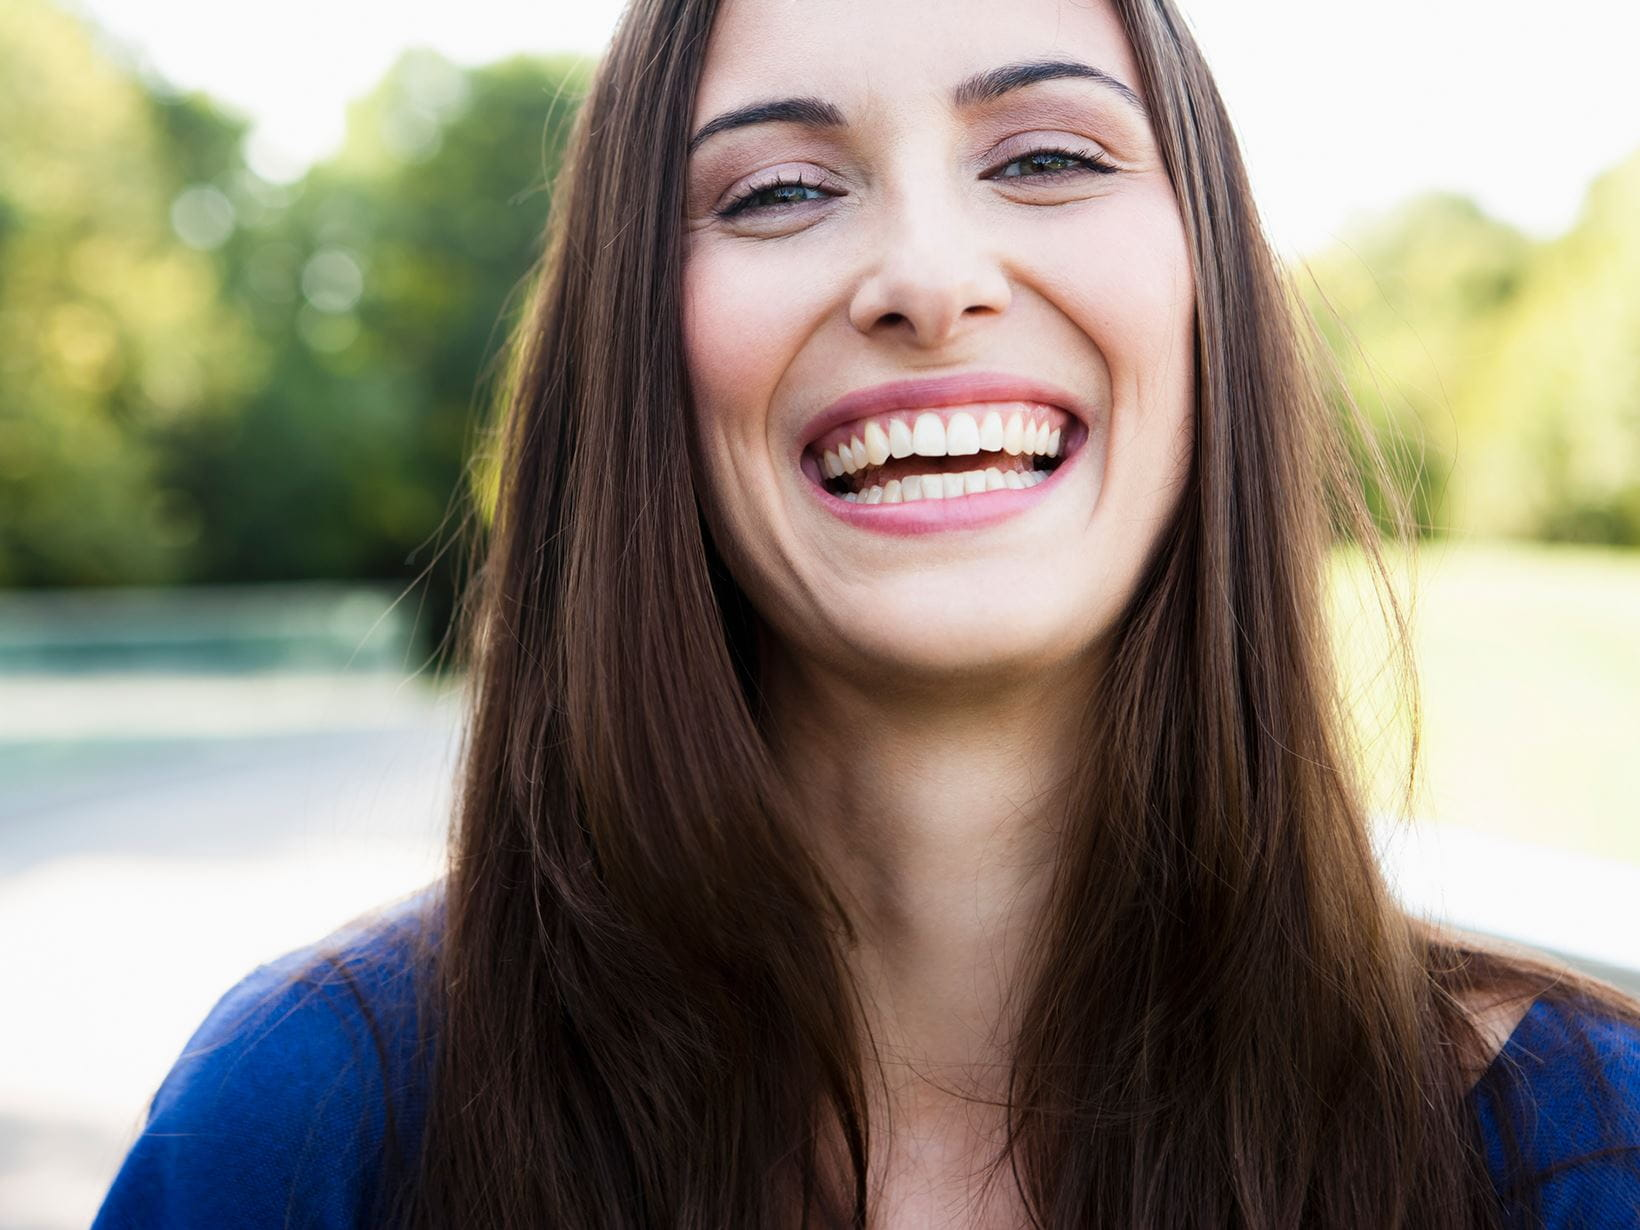 pretty brunette lady smiling wearing blue